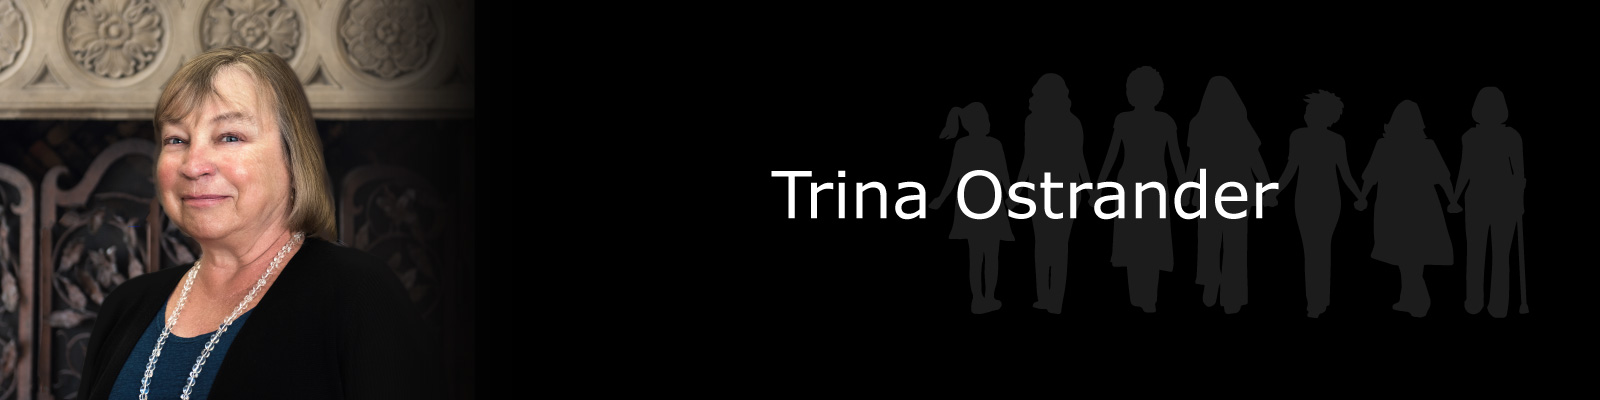 Photo of Trina Ostrander.